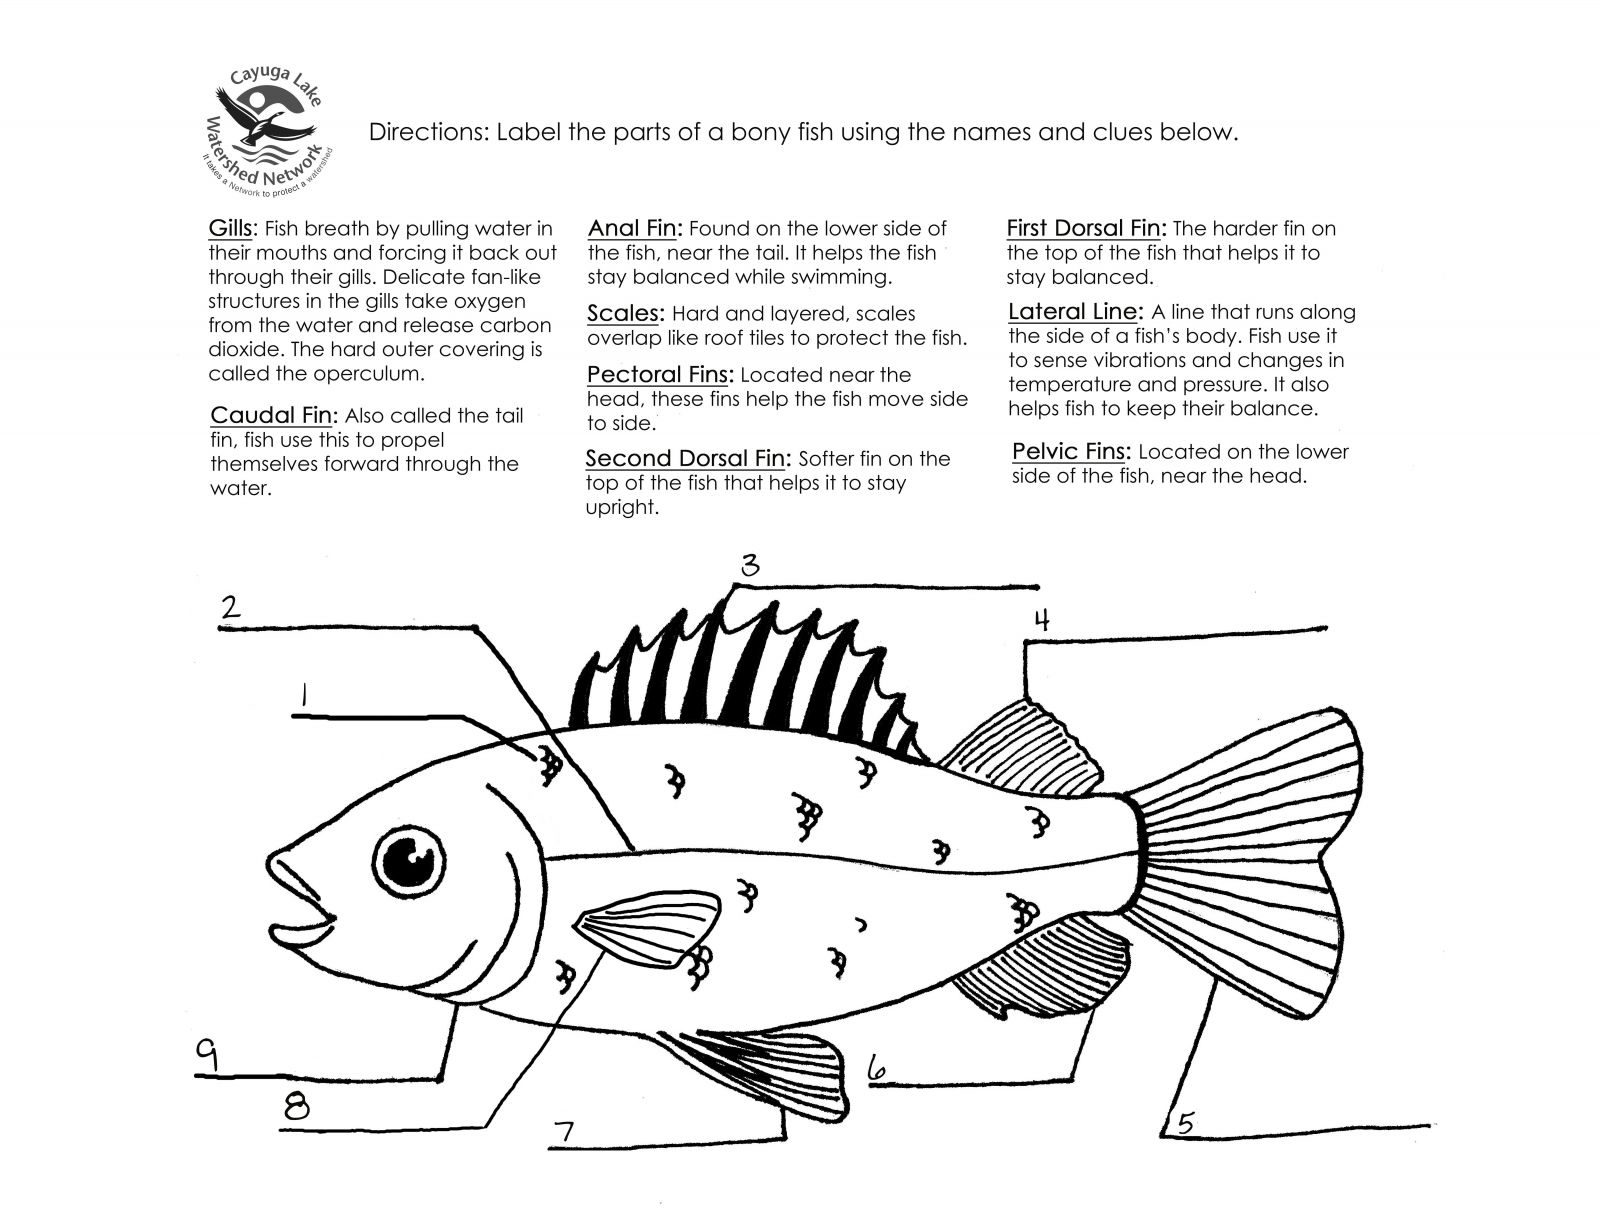 medium resolution of Bony Fish Anatomy Worksheet Images \u0026 Pictures - Becuo   Fish anatomy